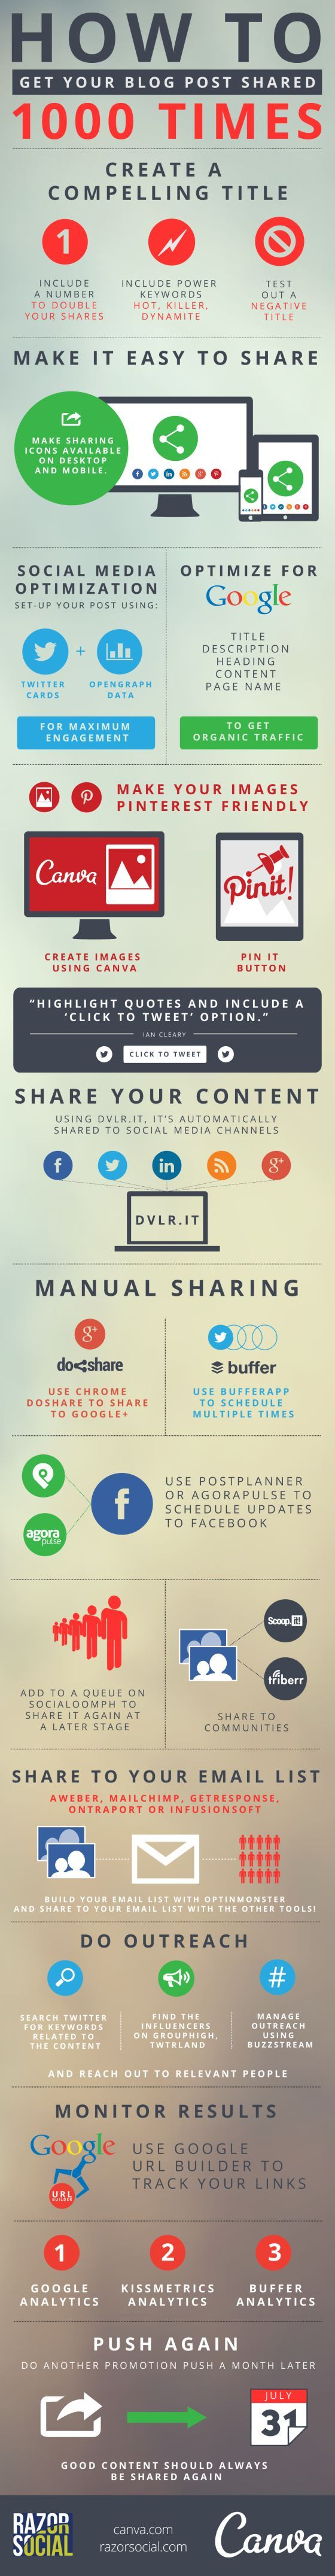 How to Get Your Blog Post Shared 1000 Times - good infographic from @Canva